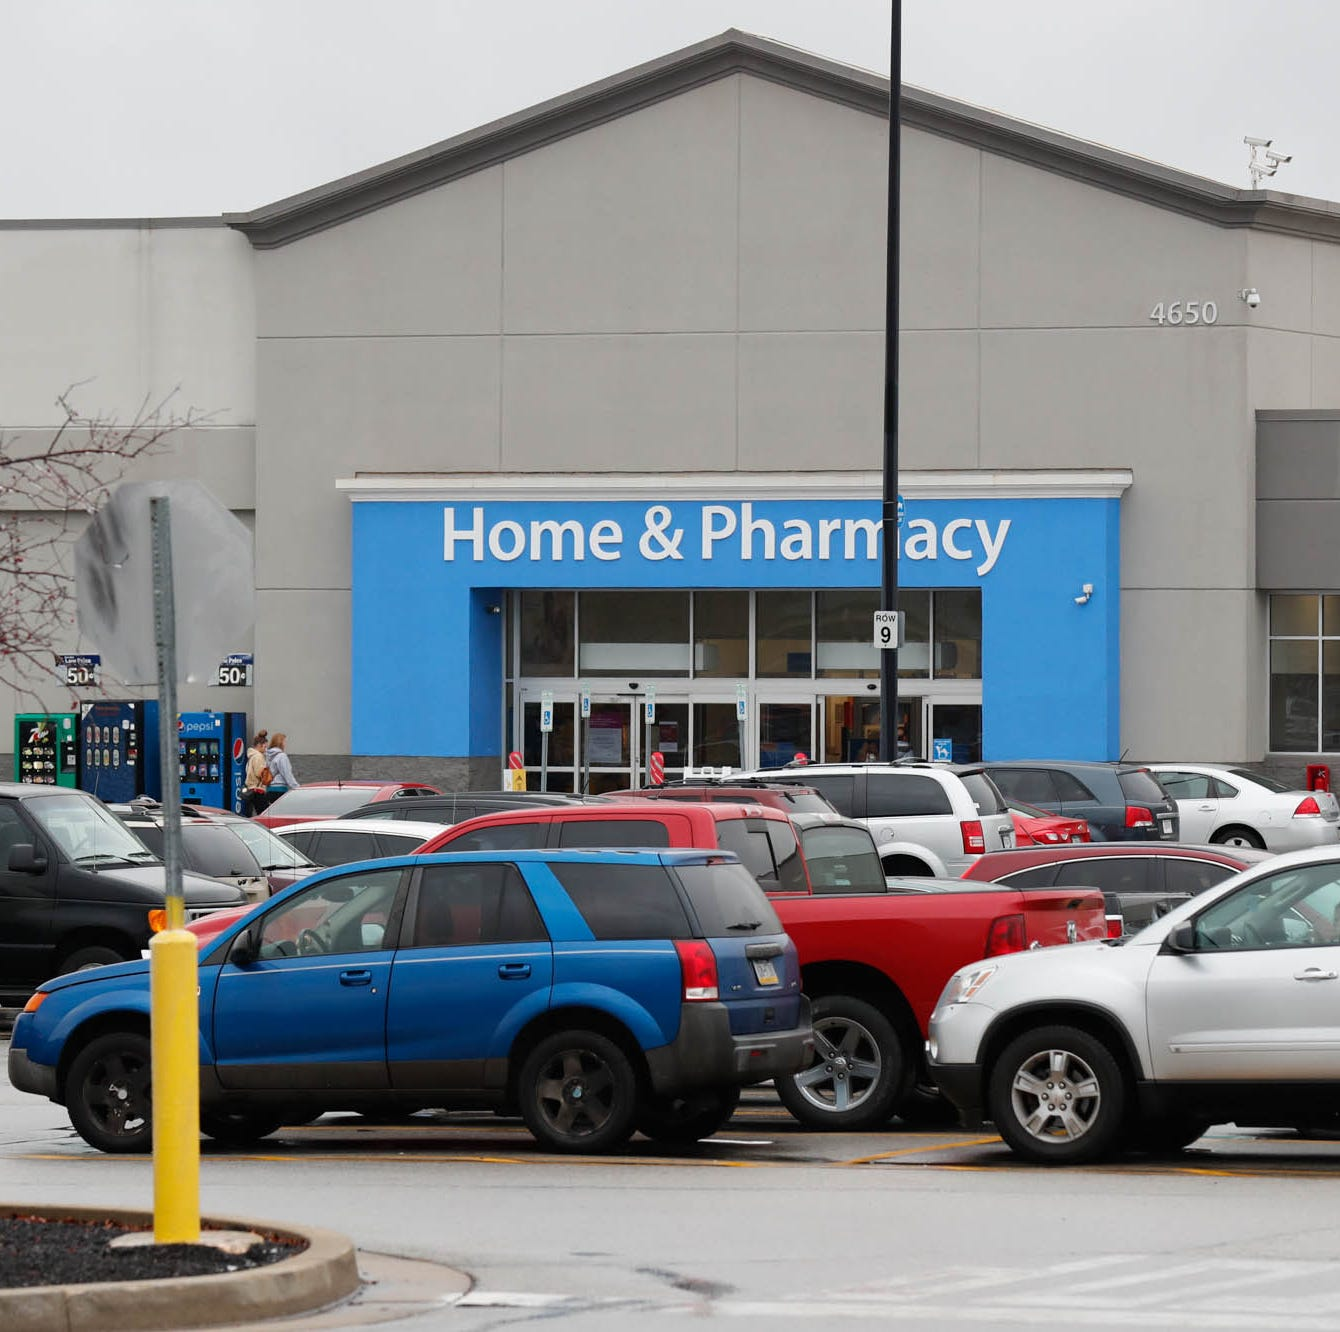 'They changed their ways': How officials say the Beech Grove Walmart has changed for the better